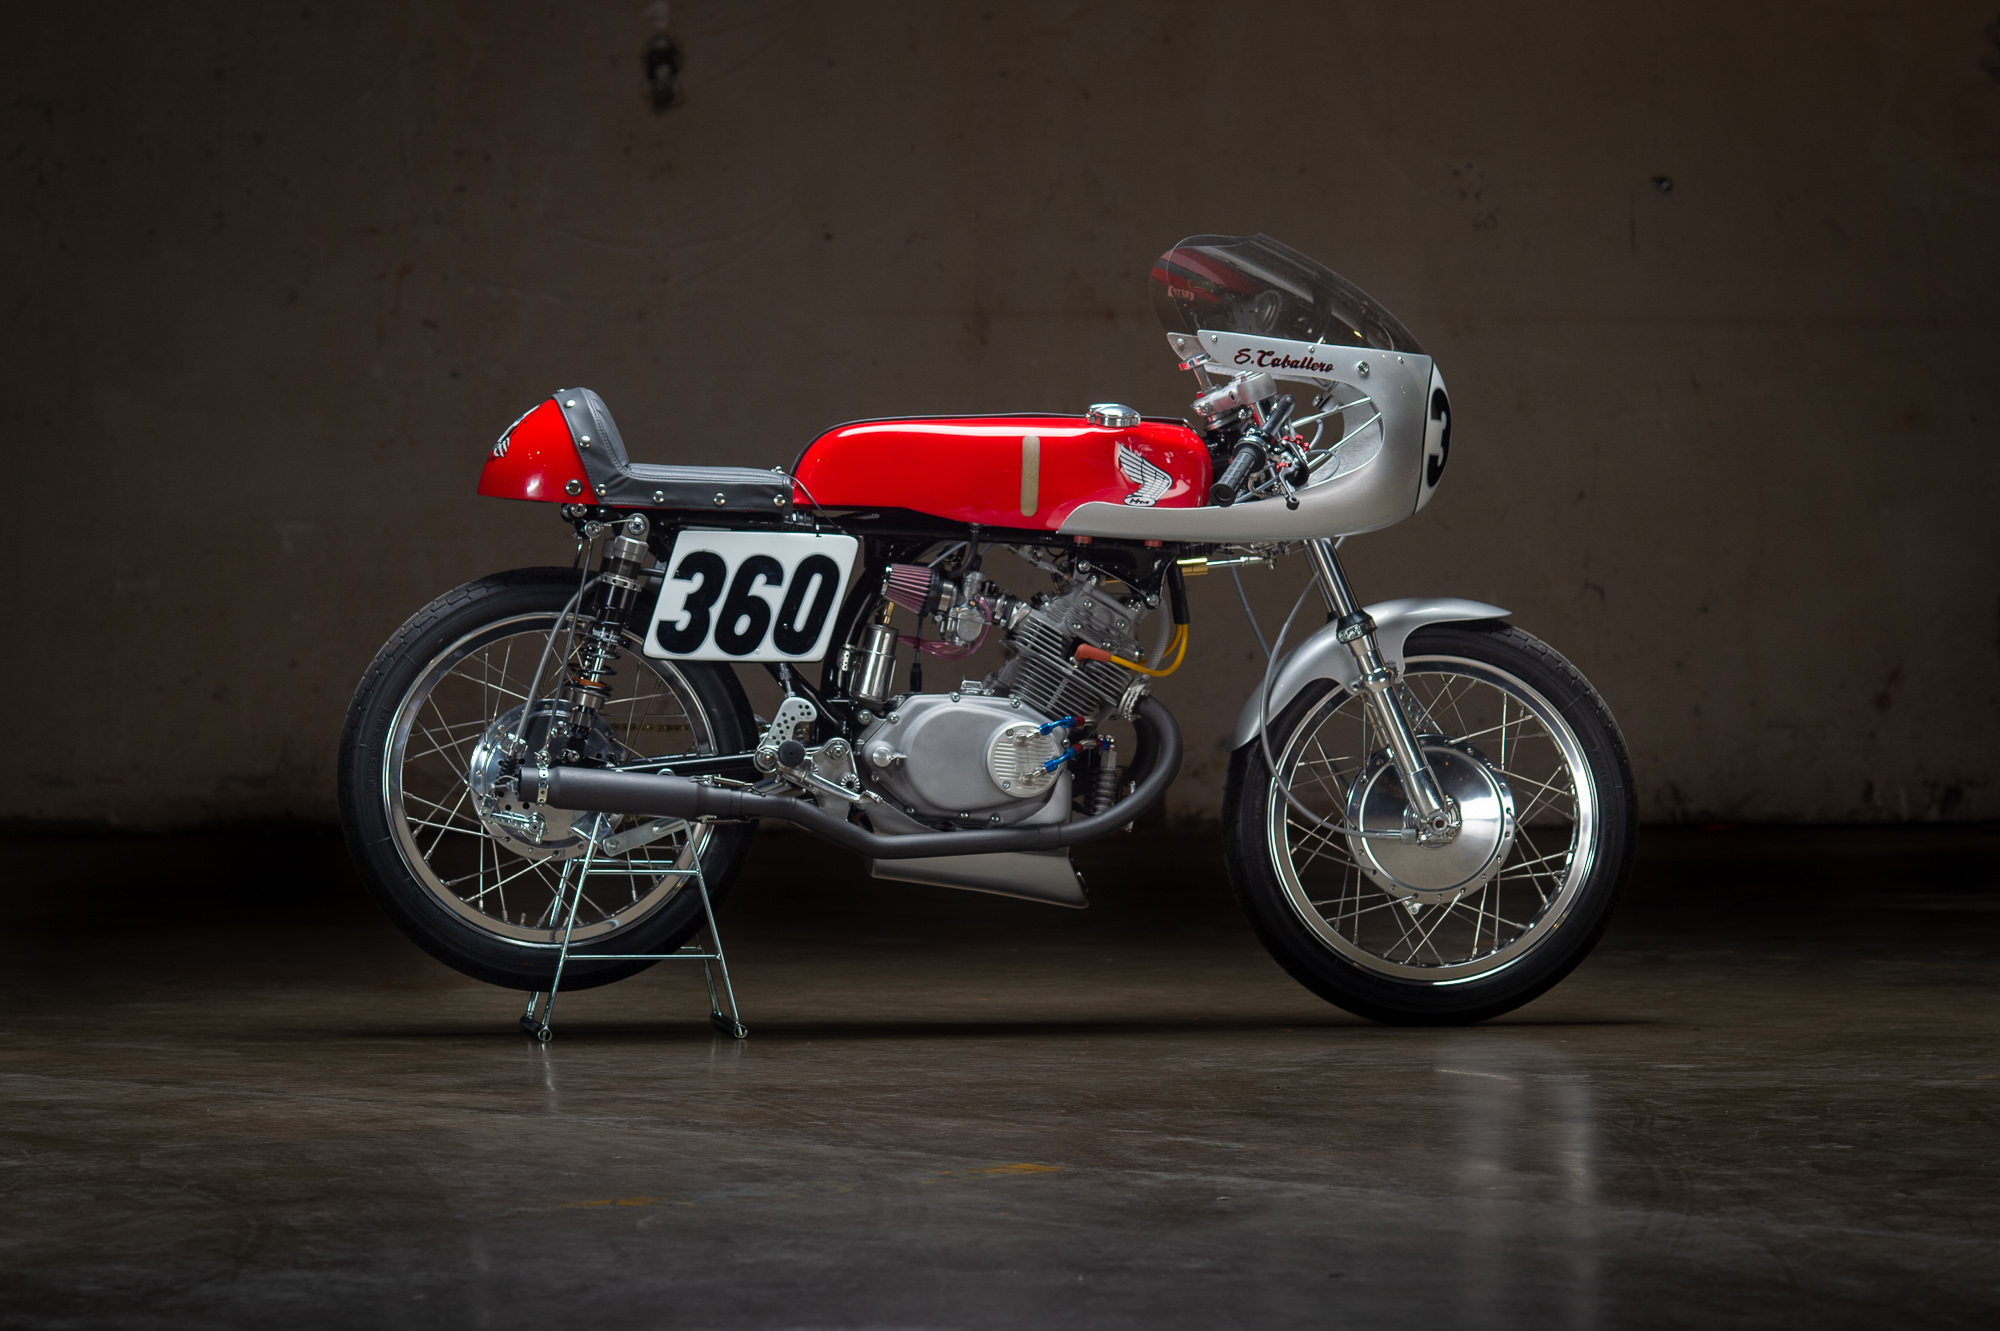 The Michael Lichter photo of the Cabracer360 at Revival Cycles Handbuilt Show, late April 2018. Notice the front fairing tails have been cut down. There are other refinements like a rock shield for the oil cooler, and a tether for the seat release screw.